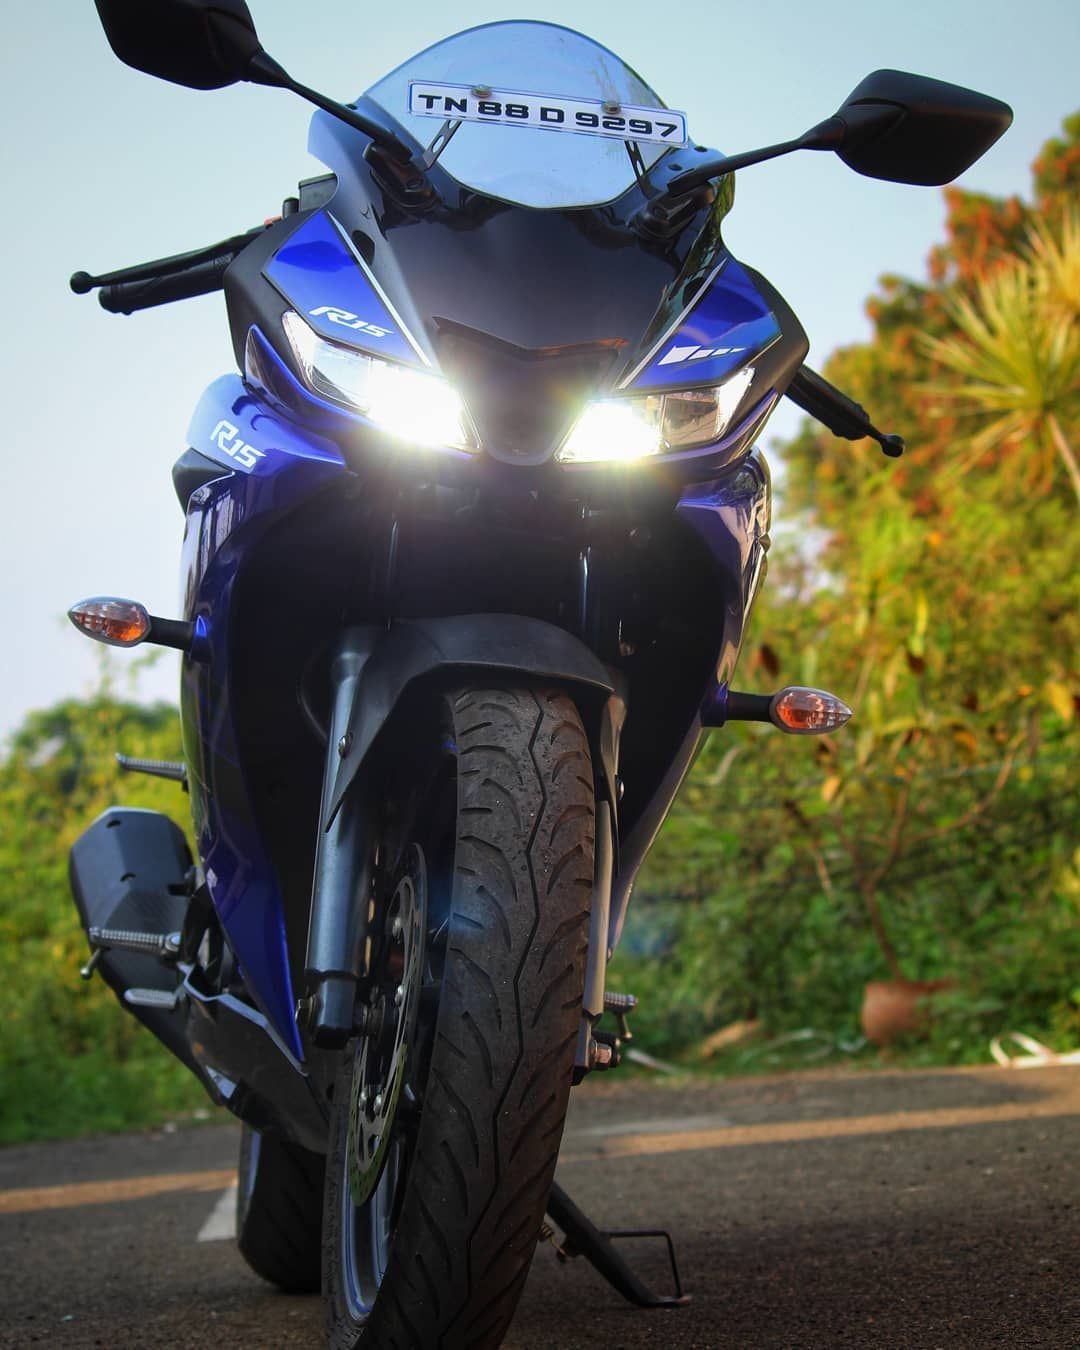 Follow R15 V3 0 Share Our Page More R15 V3 0 Picture By Its V3 Kiddo Dm Your Bike Pic Nithi Trendy Yamaha R15 R1 Bike Pic Yamaha Bikes Bike Photoshoot